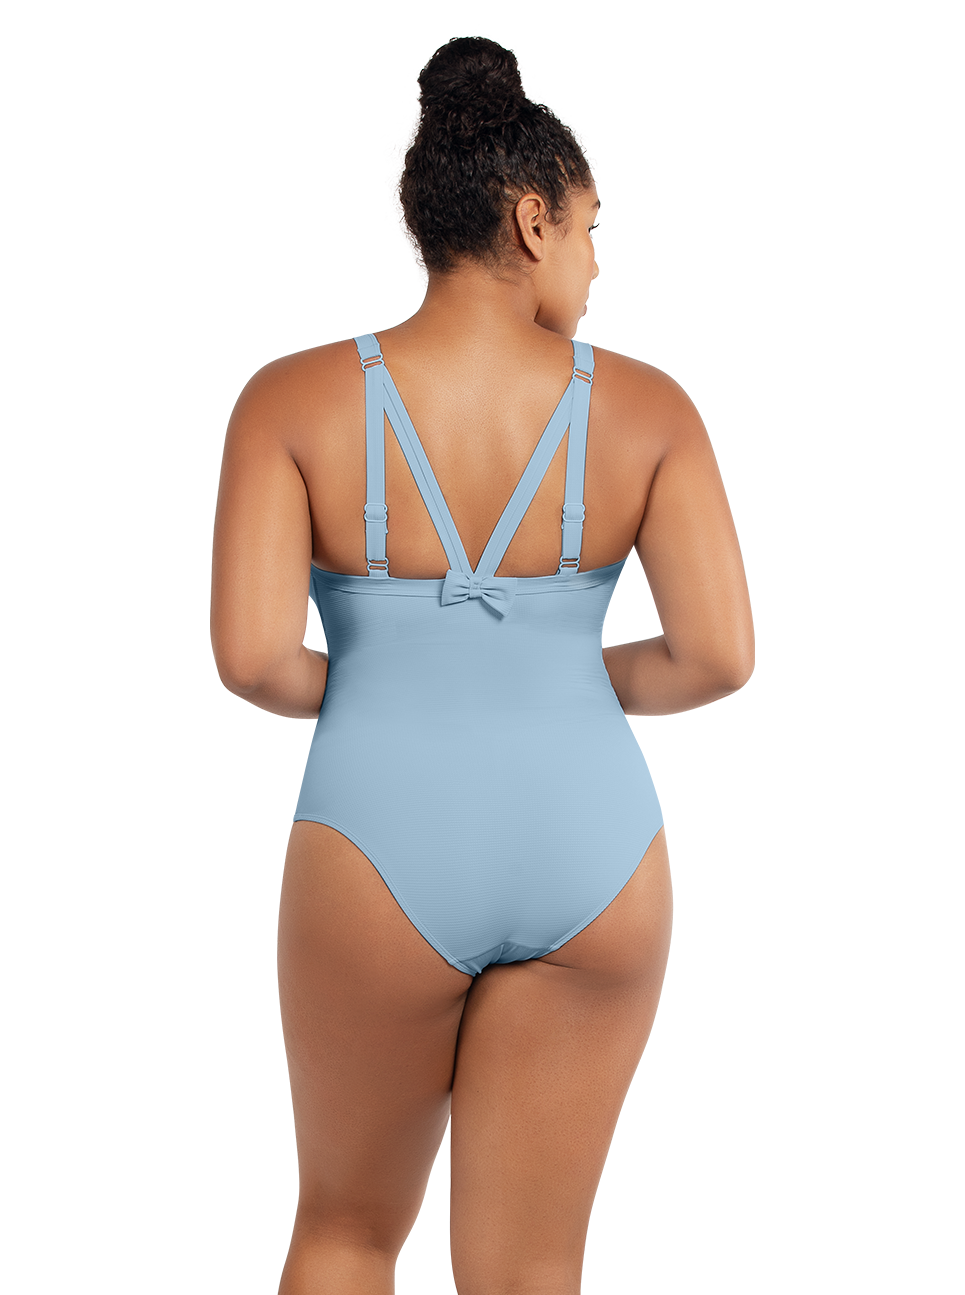 PARFAIT Vivien OnePieceSwimwearS8167 DreamBlue Back - Vivien One Piece Swimsuit Dream Blue S8167